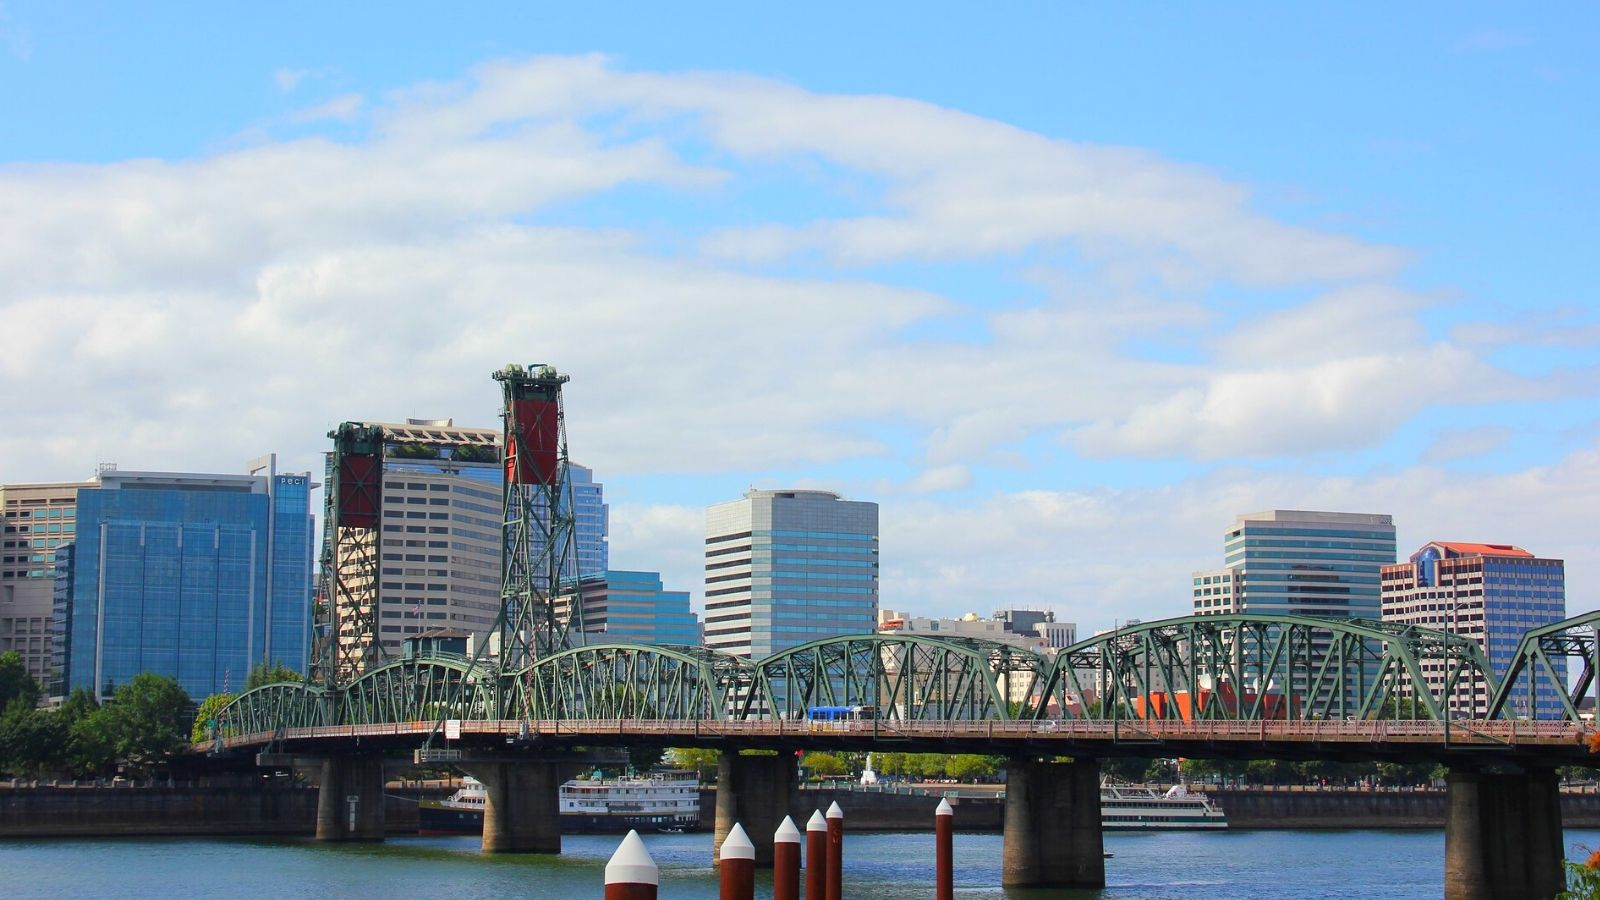 Photo Credit - Braedon on Pixabay - https://pixabay.com/photos/bridge-portland-oregon-1318753/